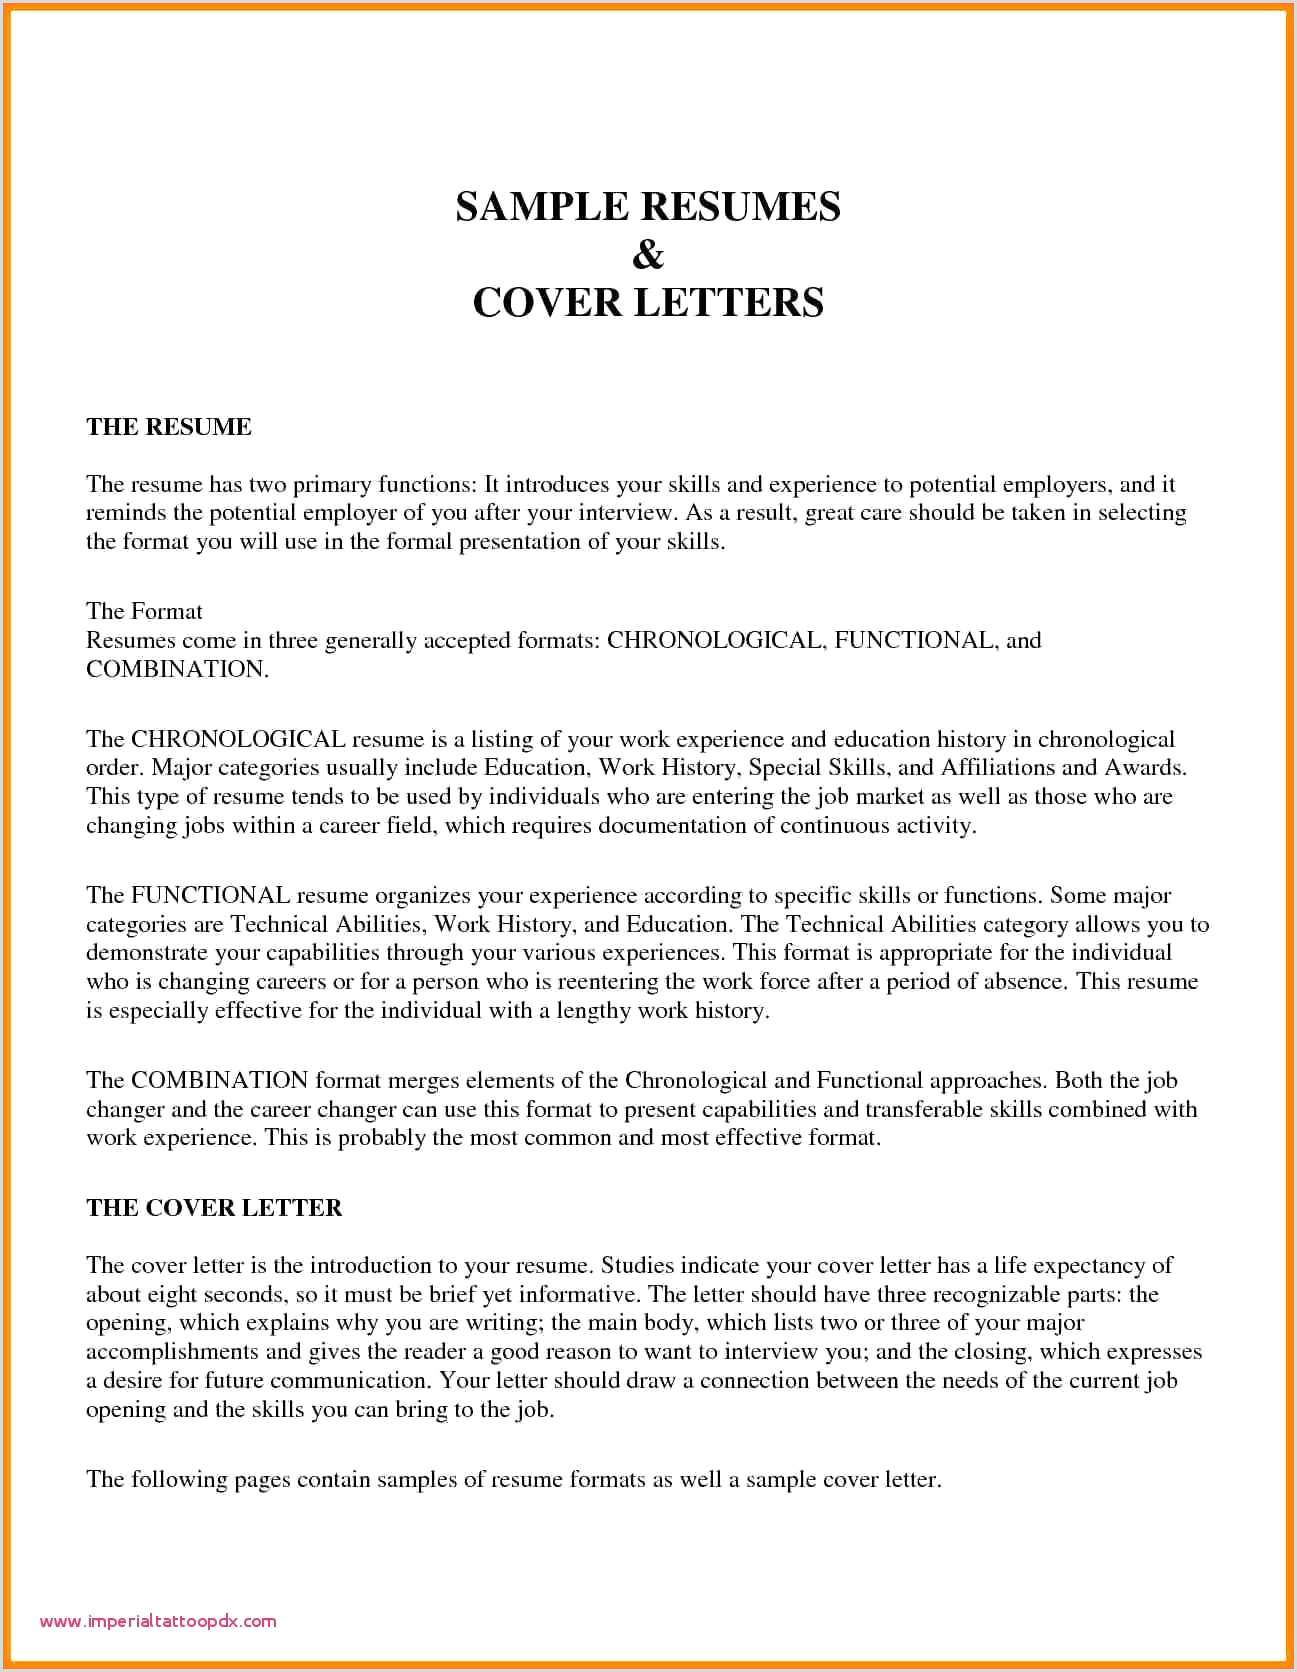 Social Worker Resumes Work Resume Examples with Work History Awesome Resume